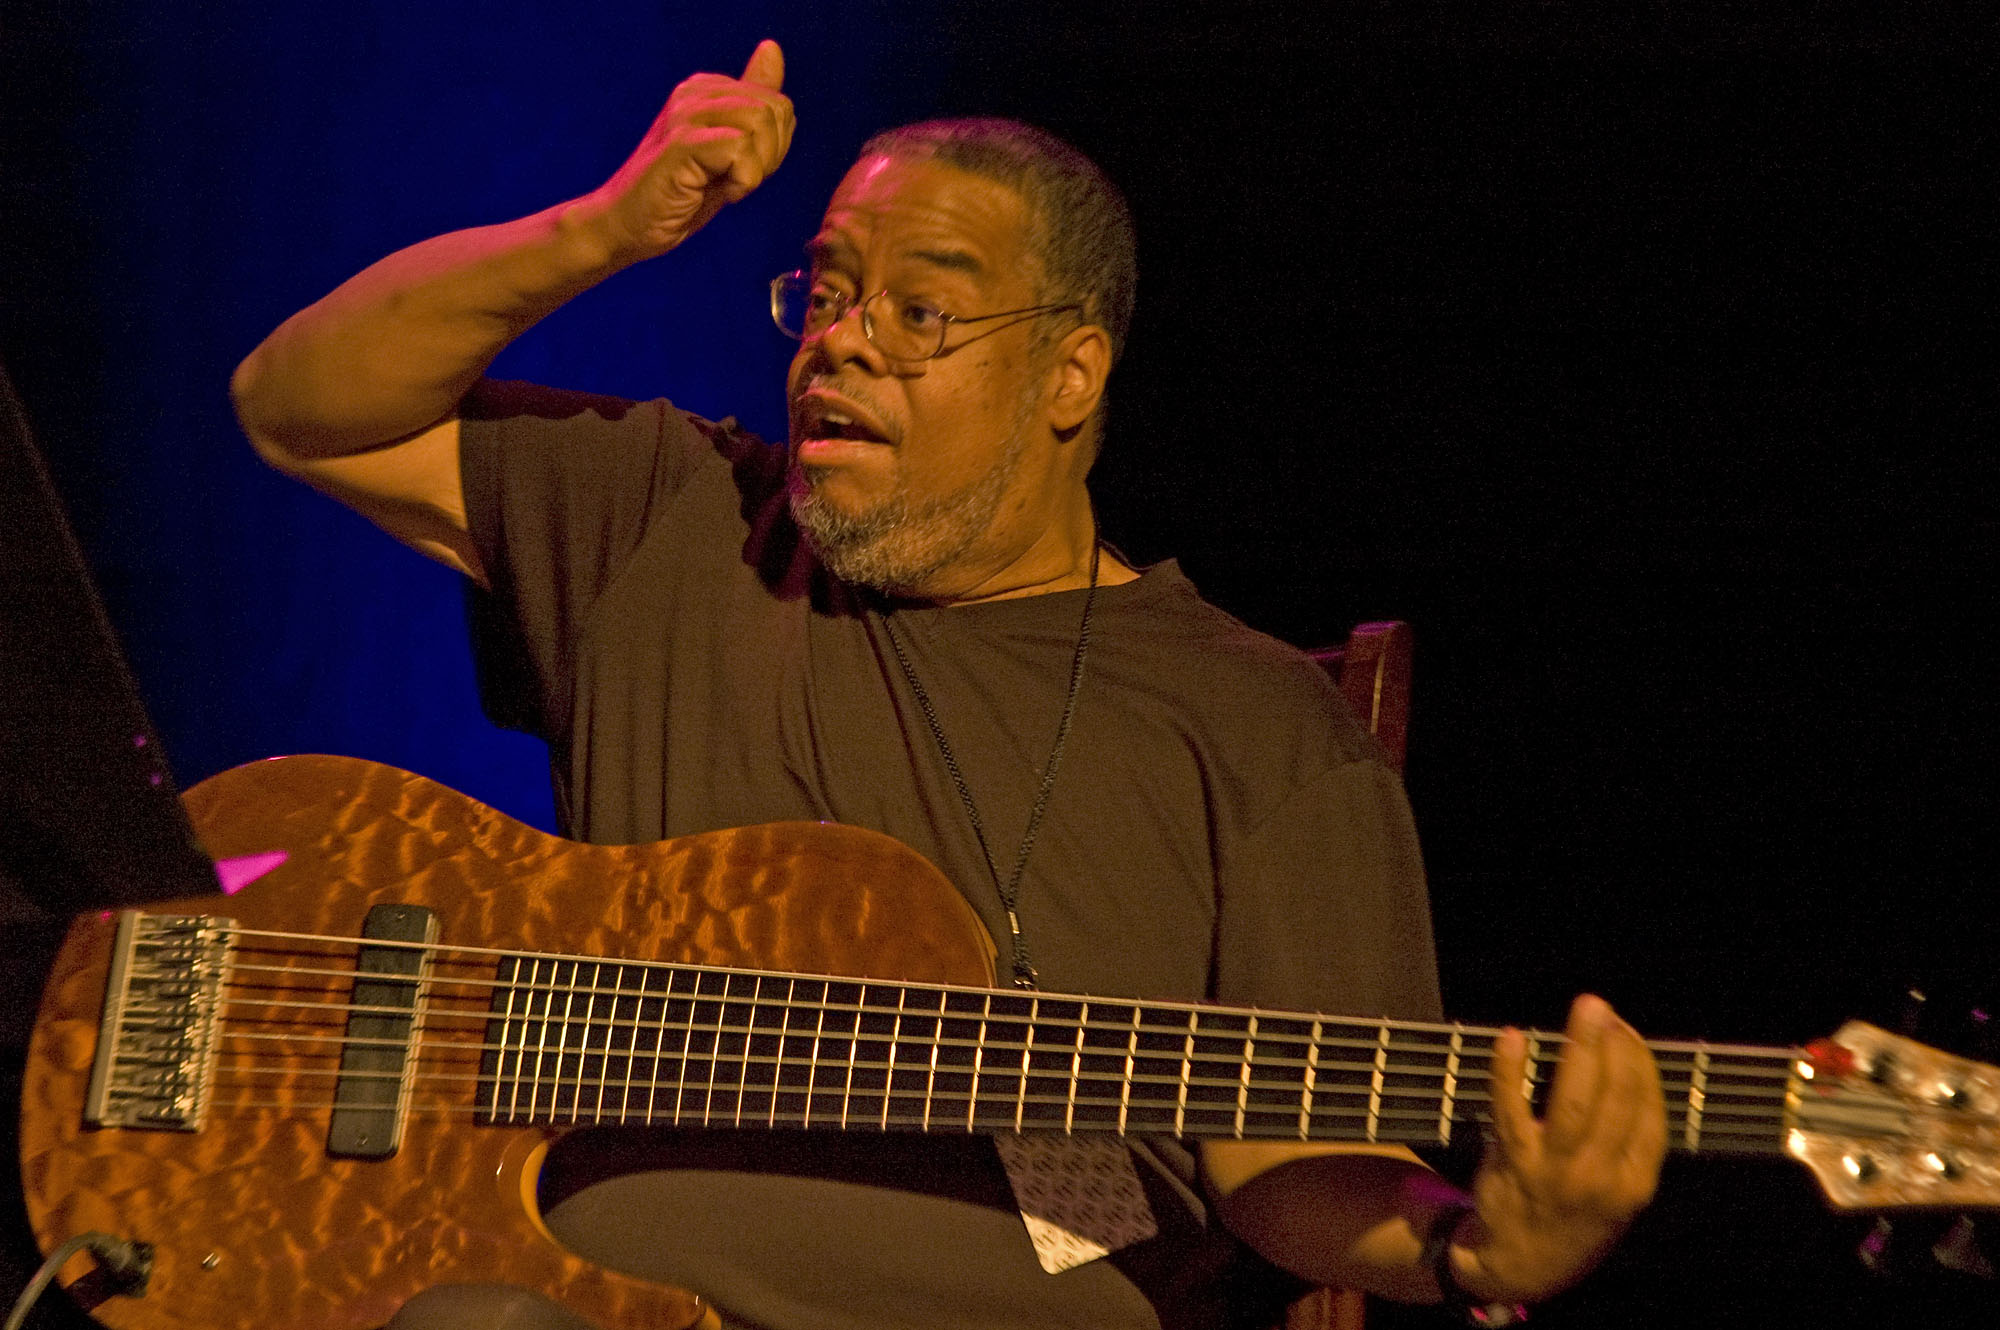 Anthony Jackson, Performing with Wayne Krantz at the 2010 New Universe Music Festival